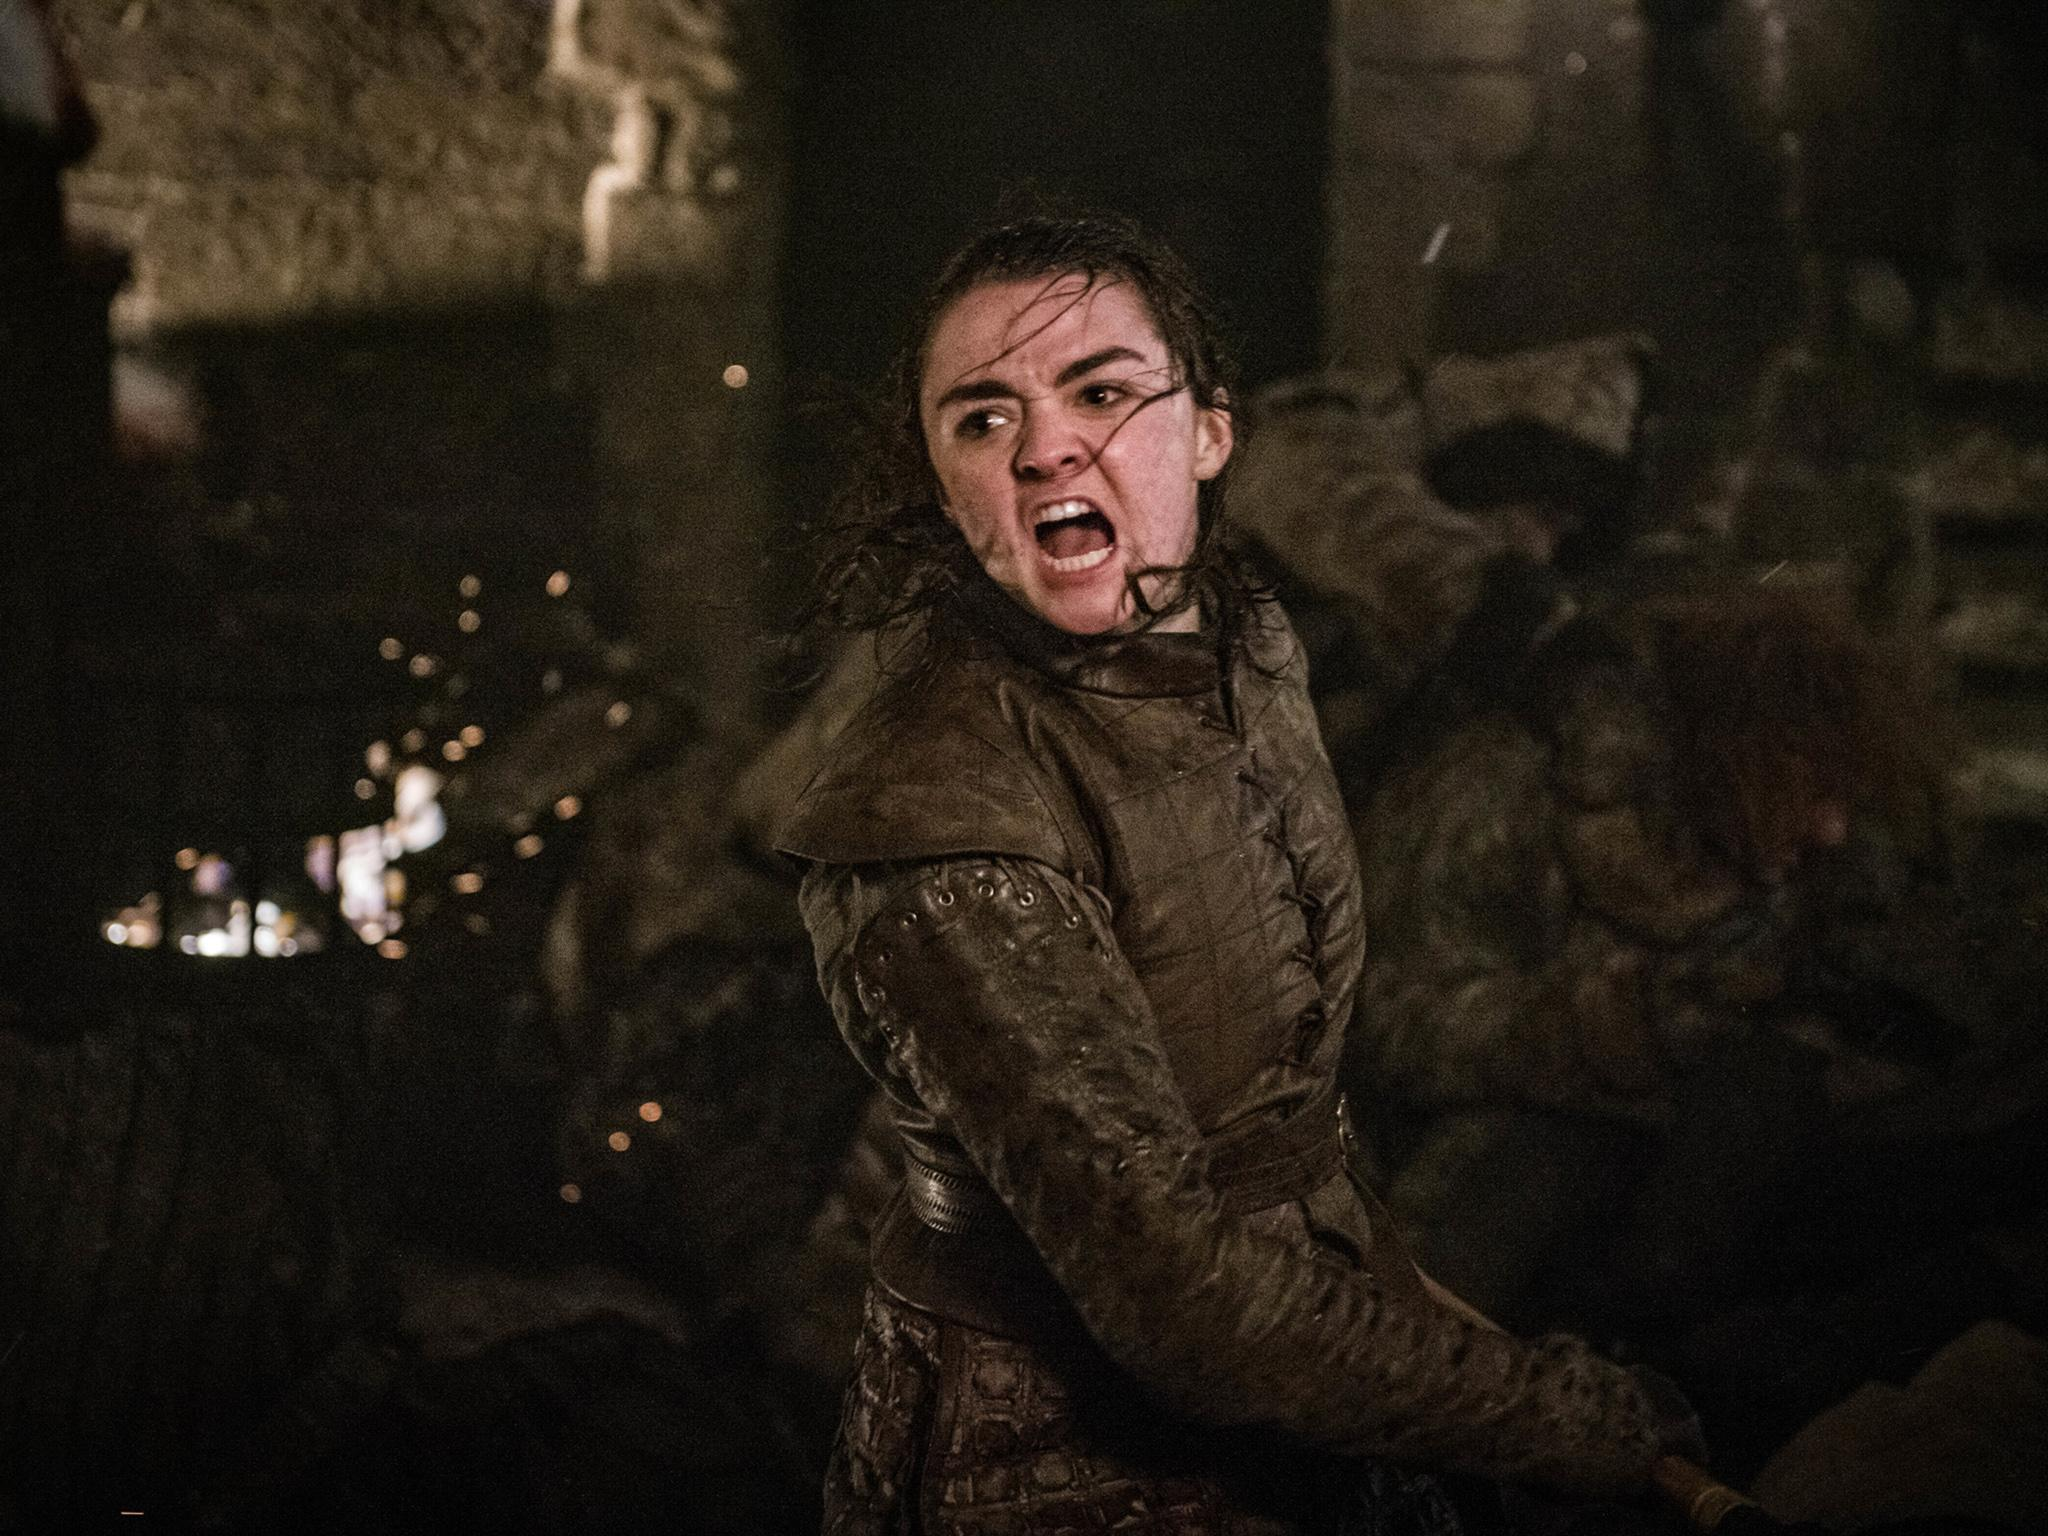 Emmys 2019: Game of Thrones cast earn 10 nominations between them